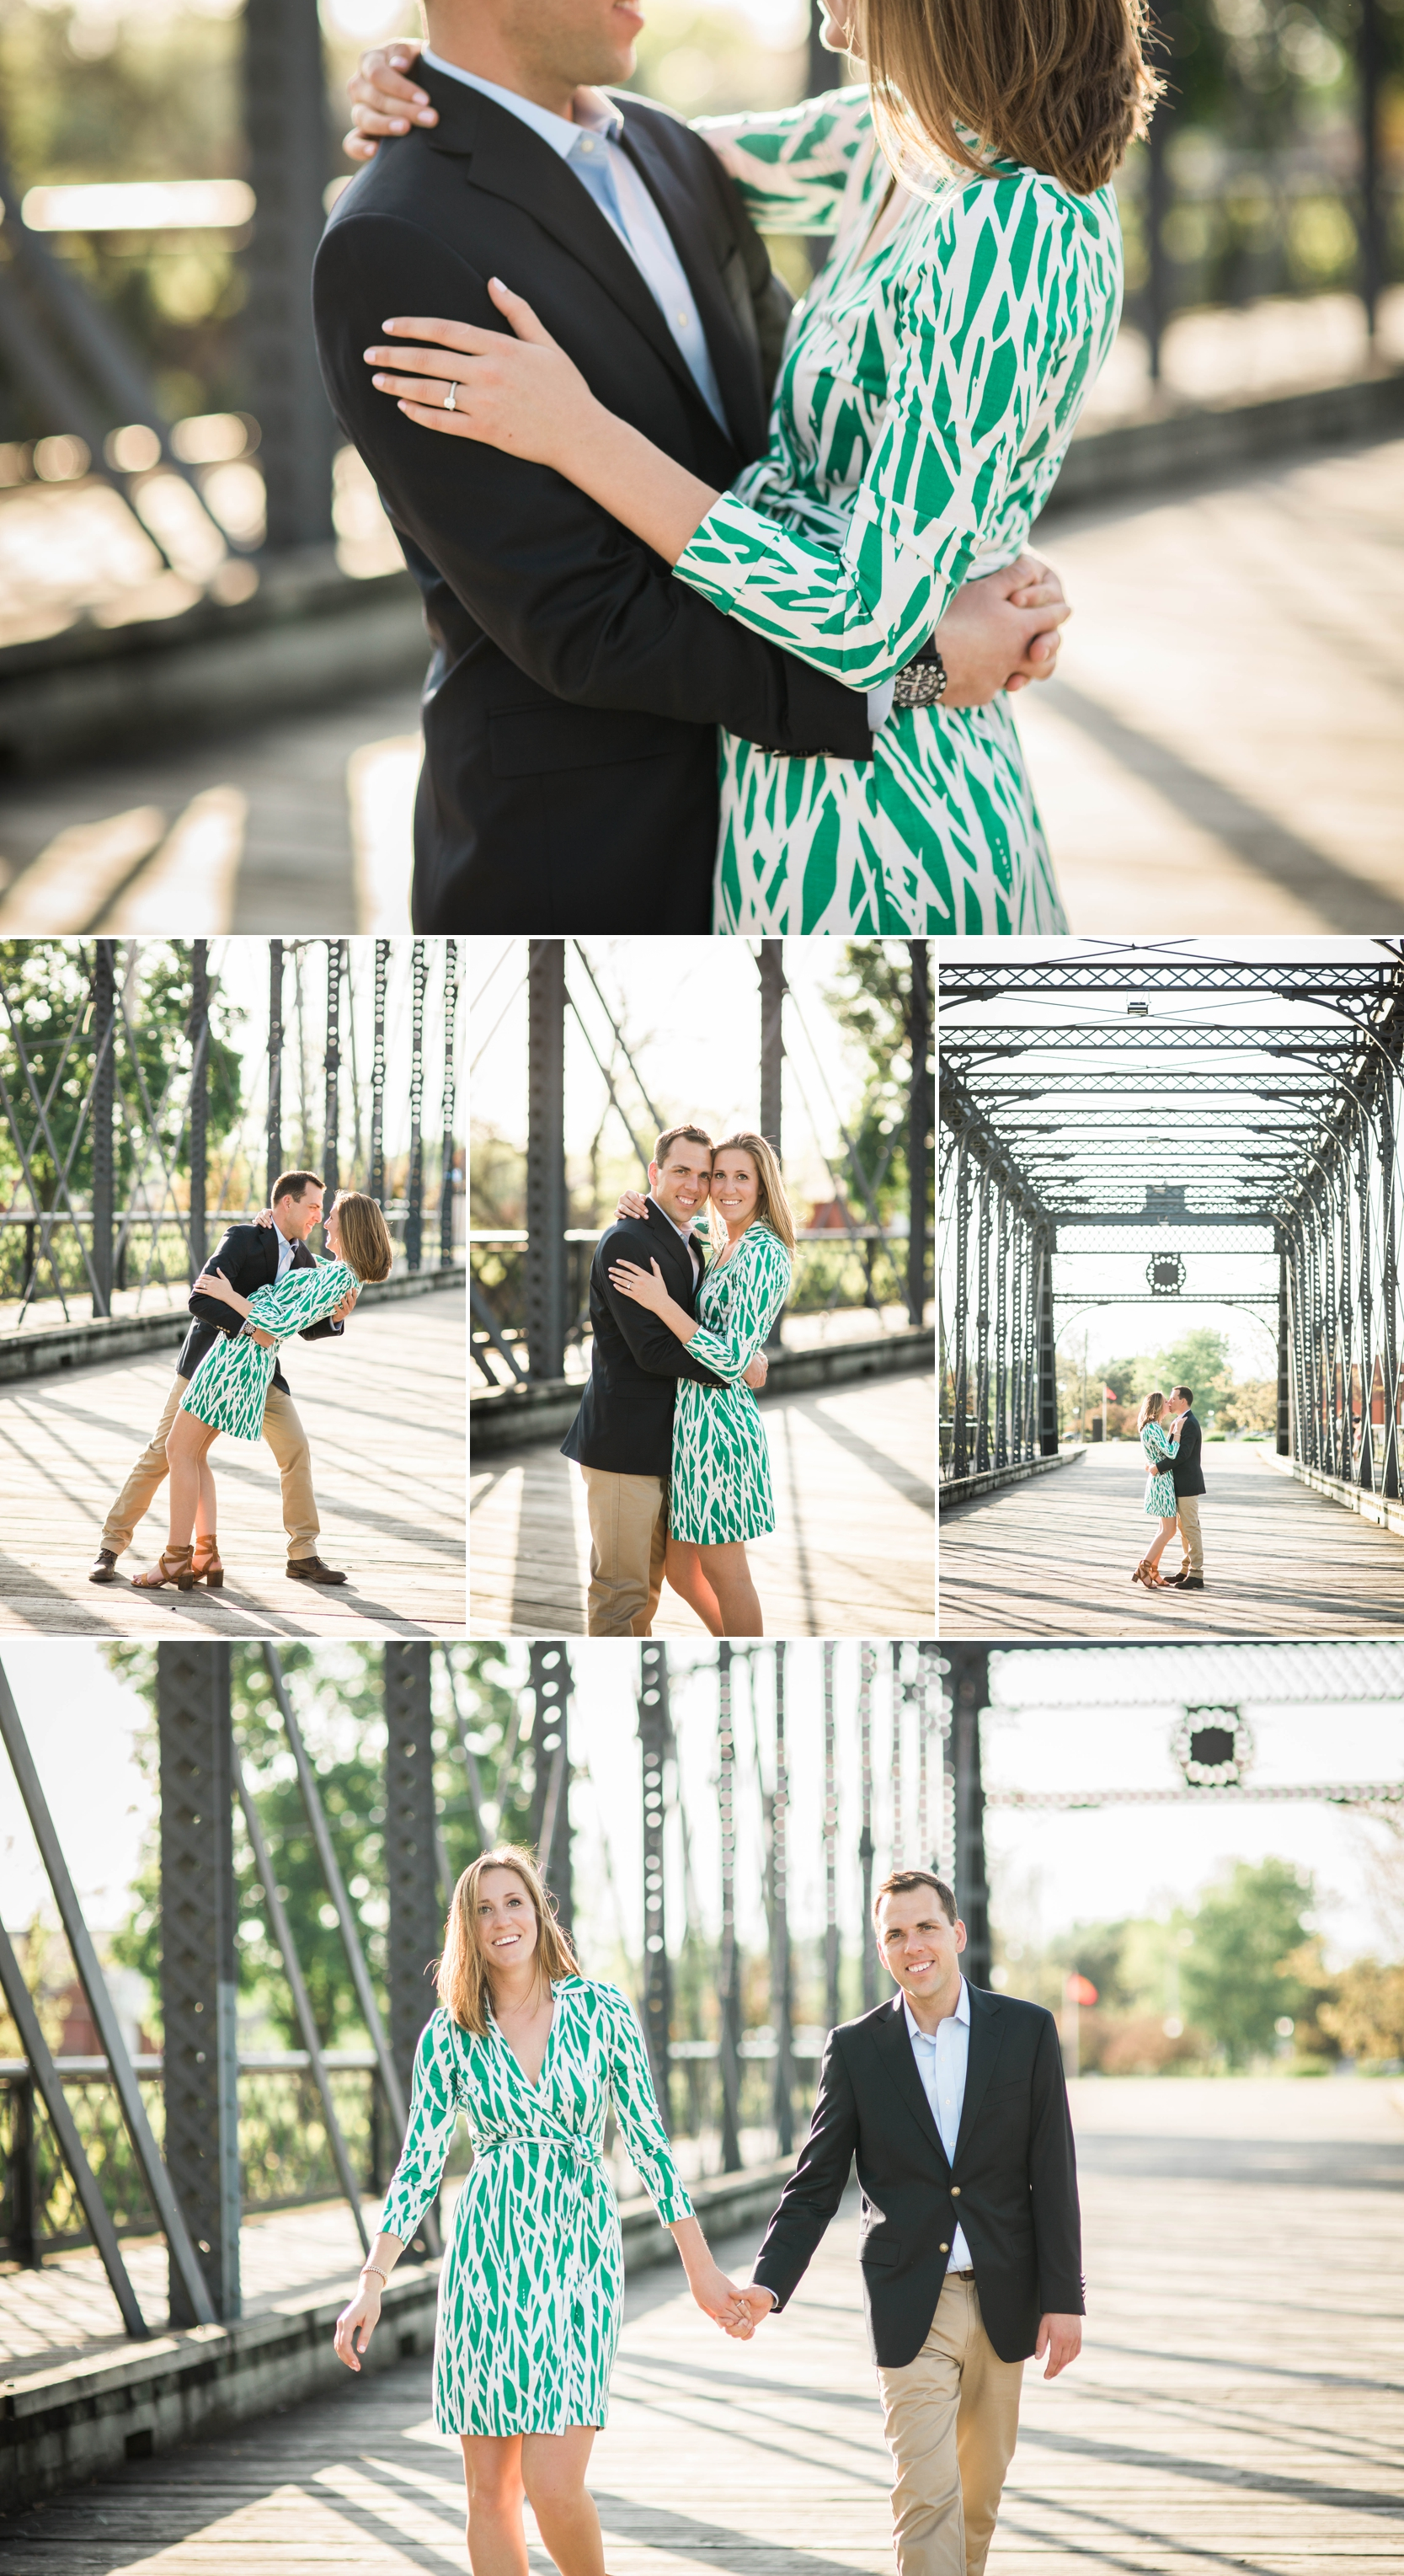 engagement-engagement session-love-downtown-wells street bridge